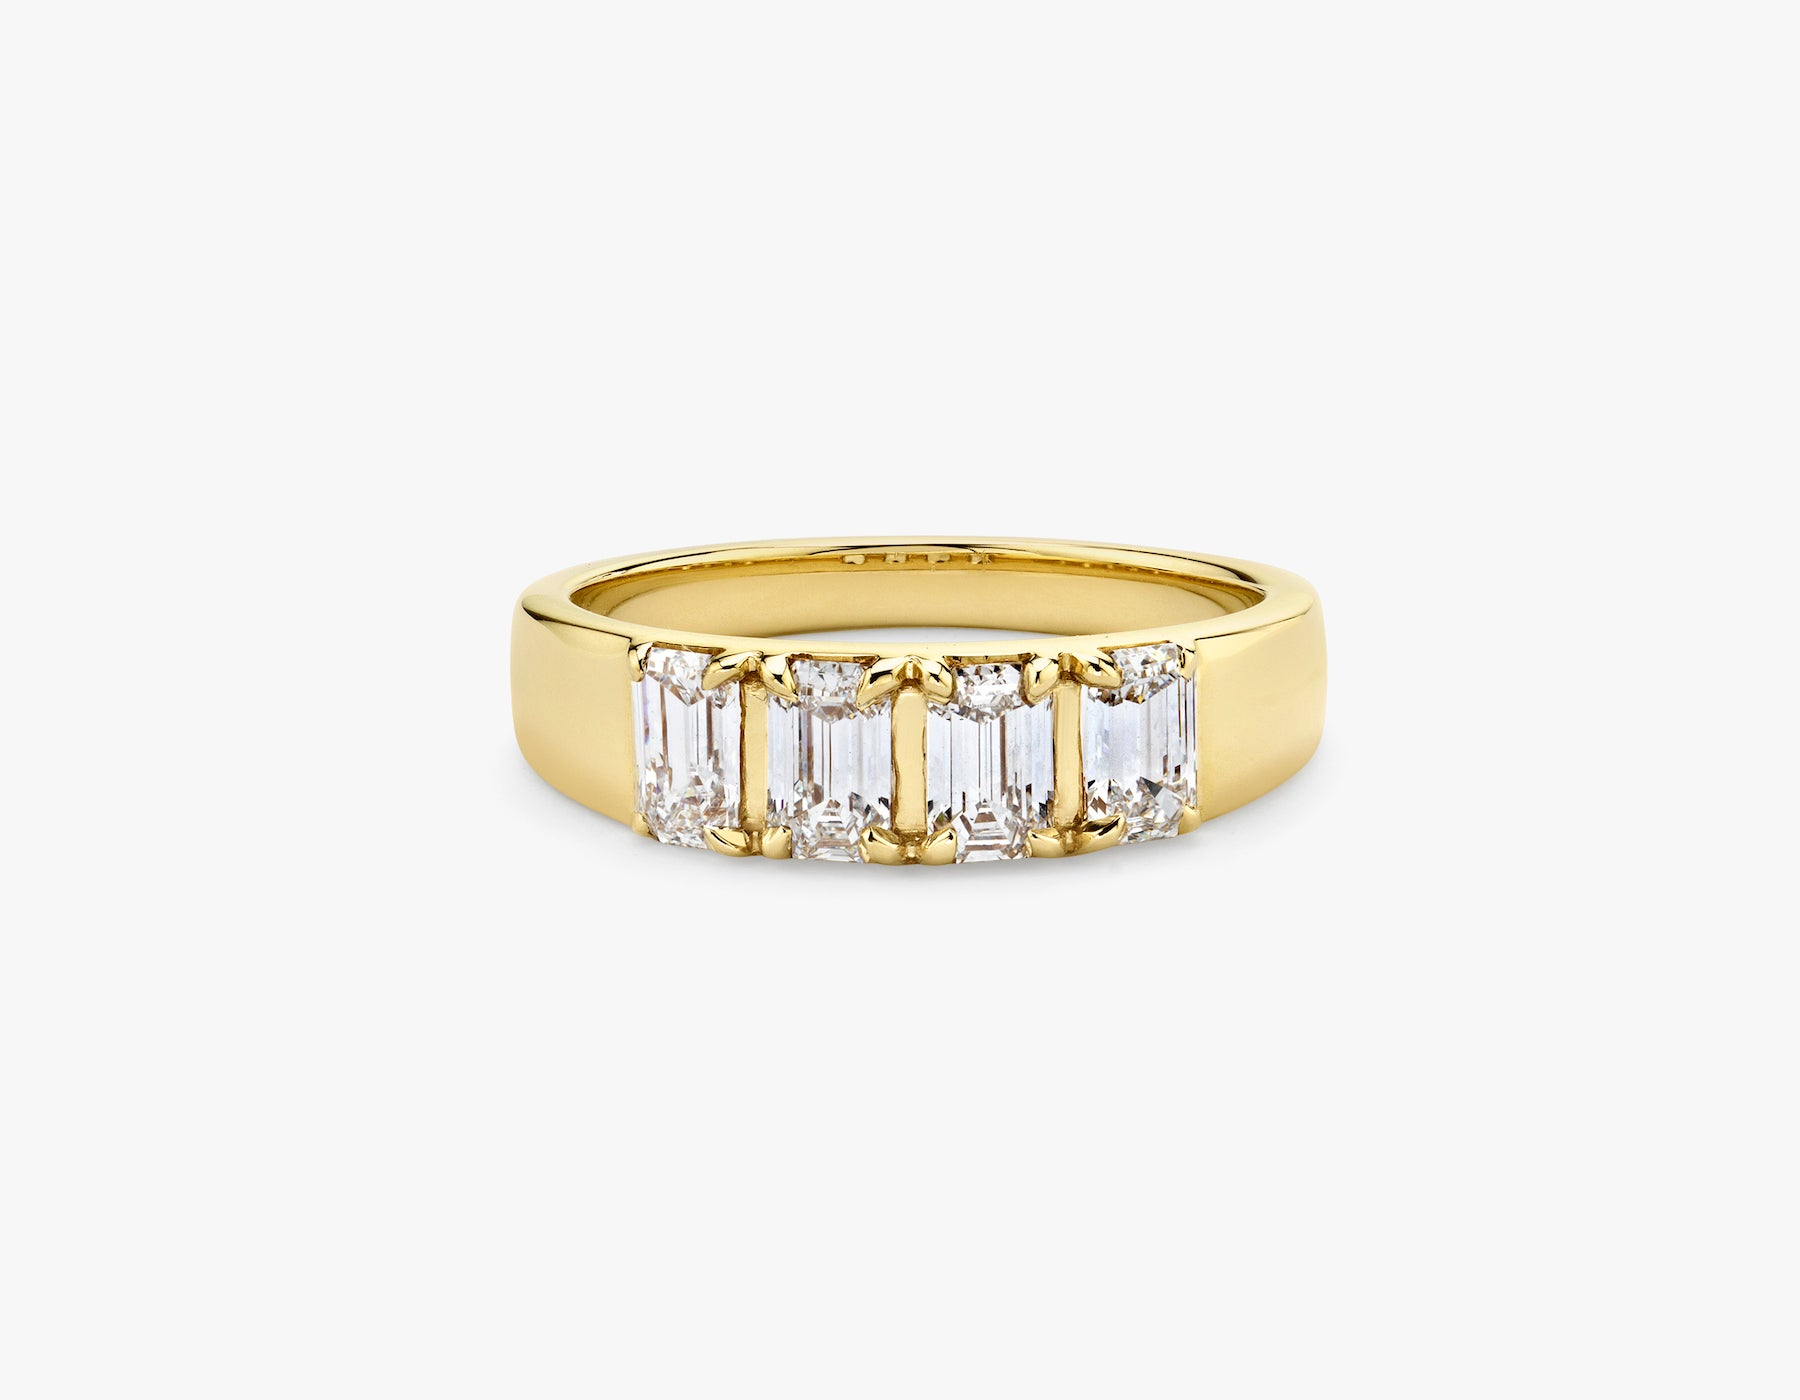 Vrai simple minimalist Emerald Diamond Tetrad Band .25ct Emerald Diamond Ring, 14K Yellow Gold